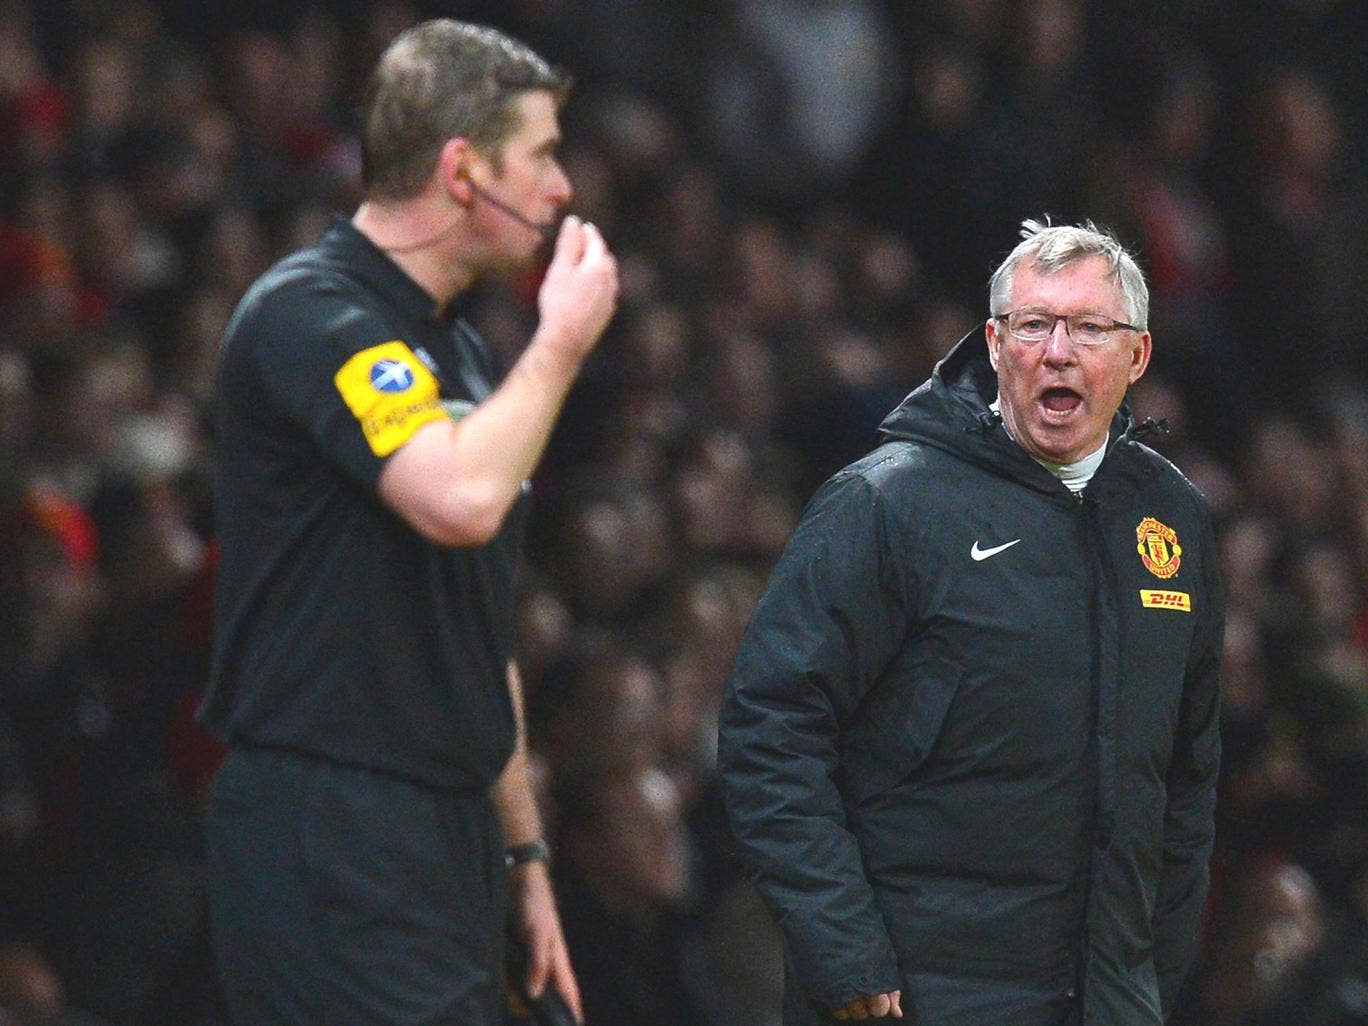 Champions City are fuming that Ferguson is let off by FA